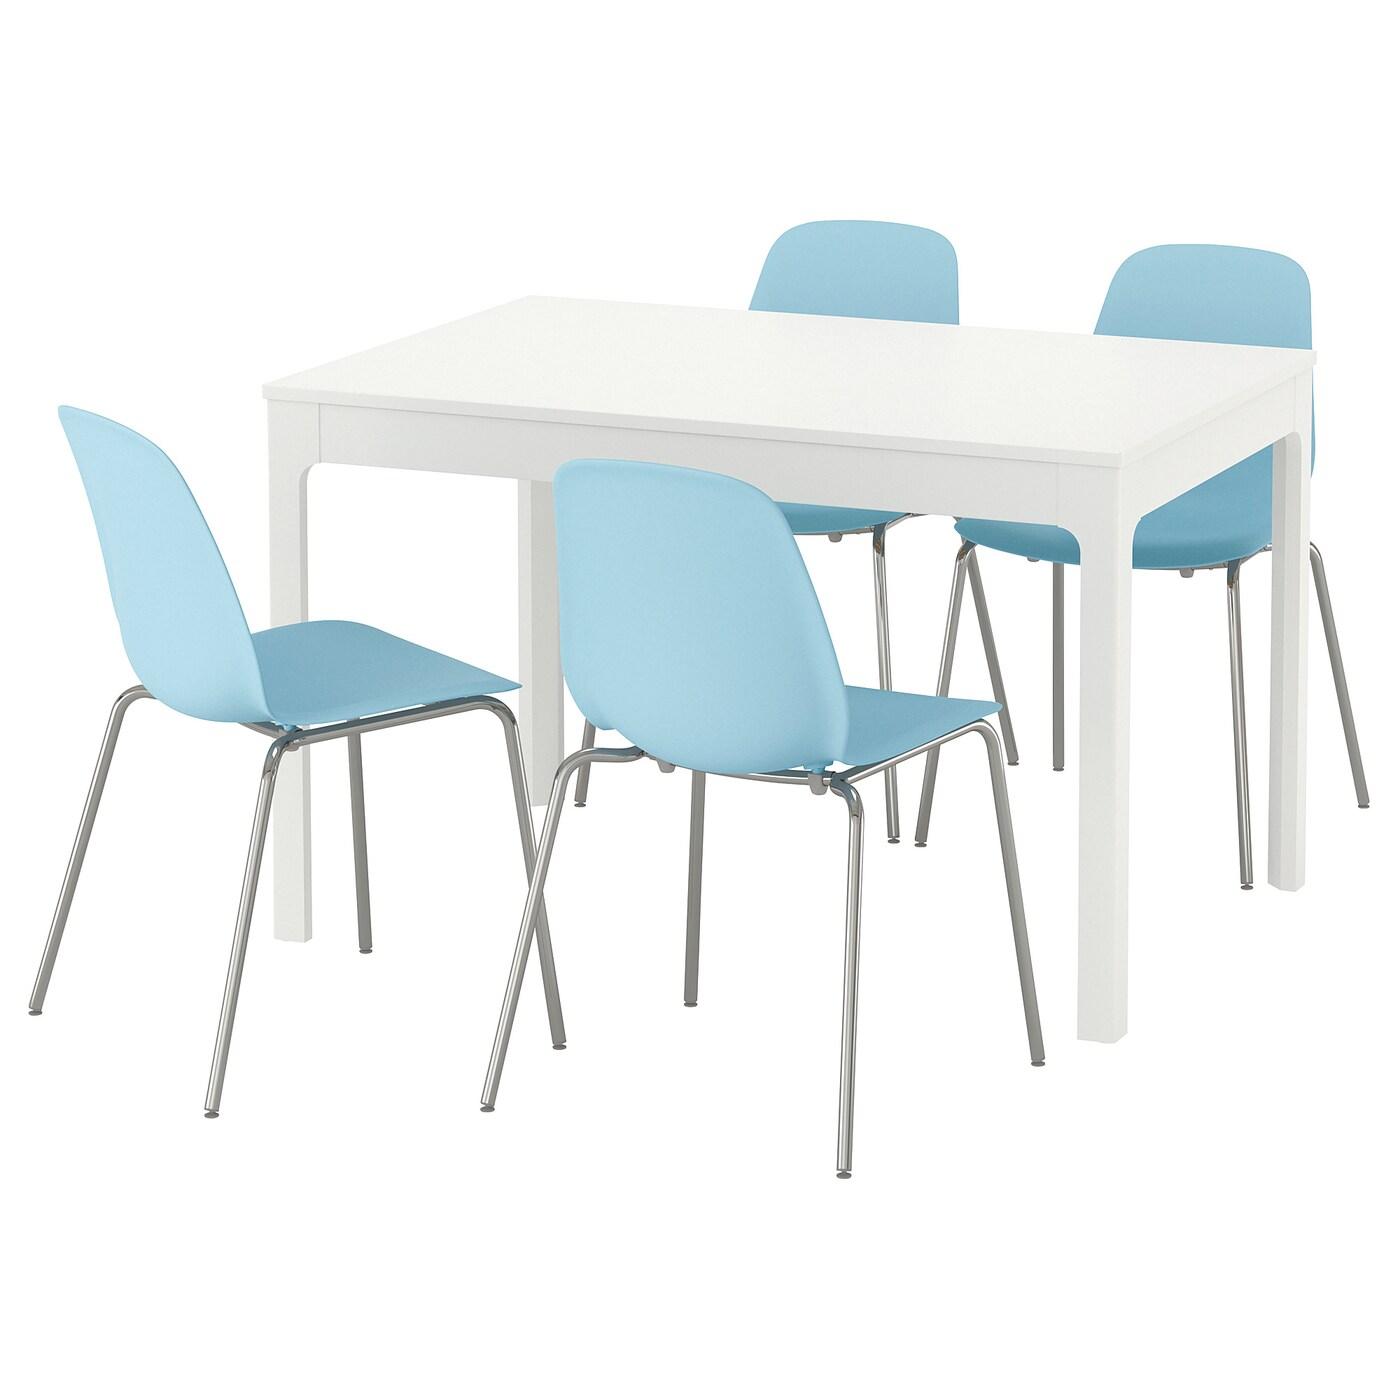 Light Blue Dining Chairs Leifarne Ekedalen Table And 4 Chairs White Light Blue 120